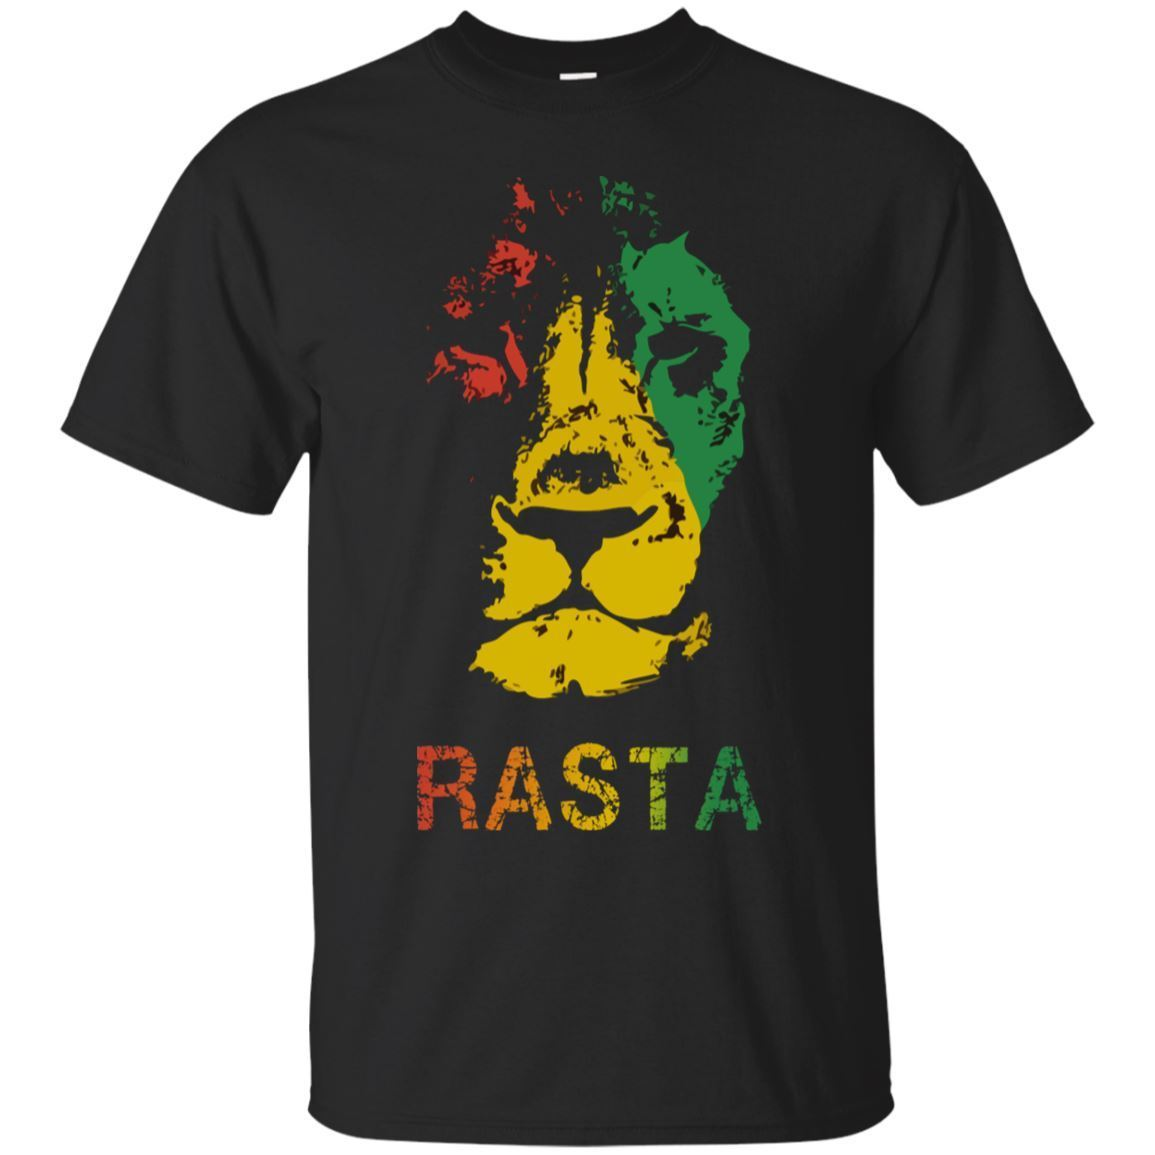 Reggae Clothing Men Women Jamaica Rasta Black, Navy T-Shirt    Cartoon T Shirt Men Unisex New Fashion Tshirt Free Shipping